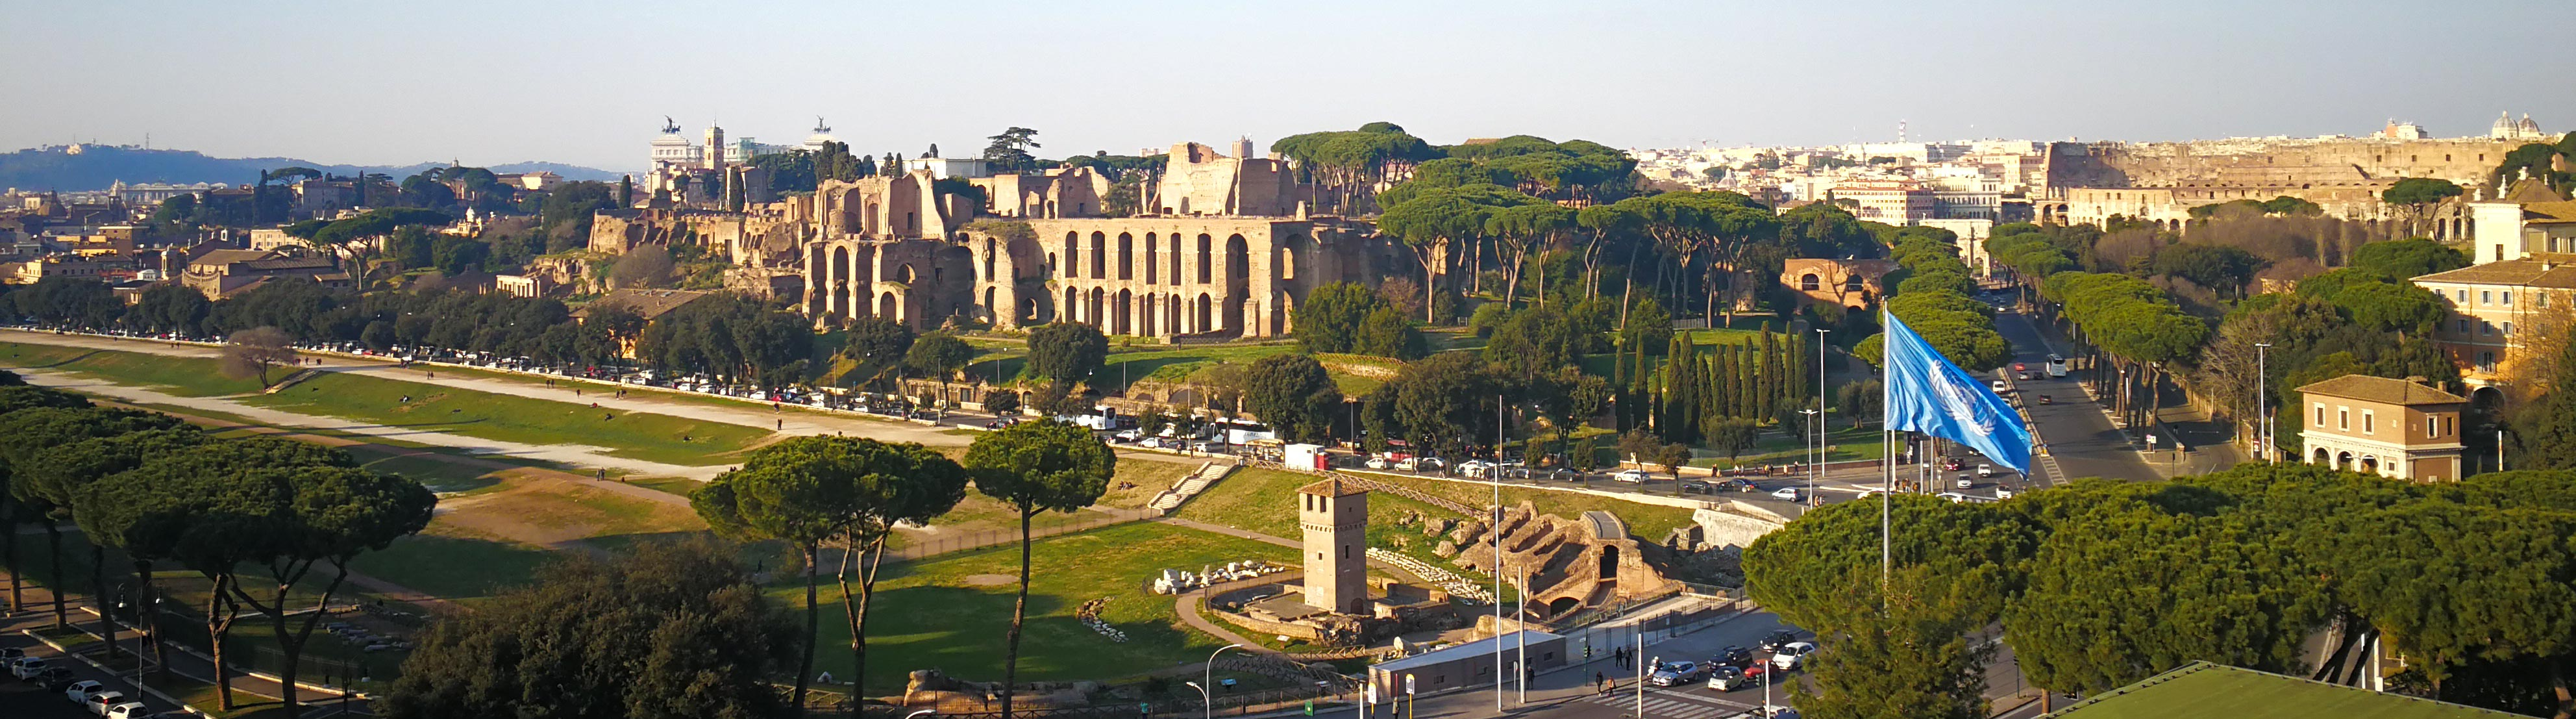 View over Circo Massimo in Rome with the FAO flag to the right.